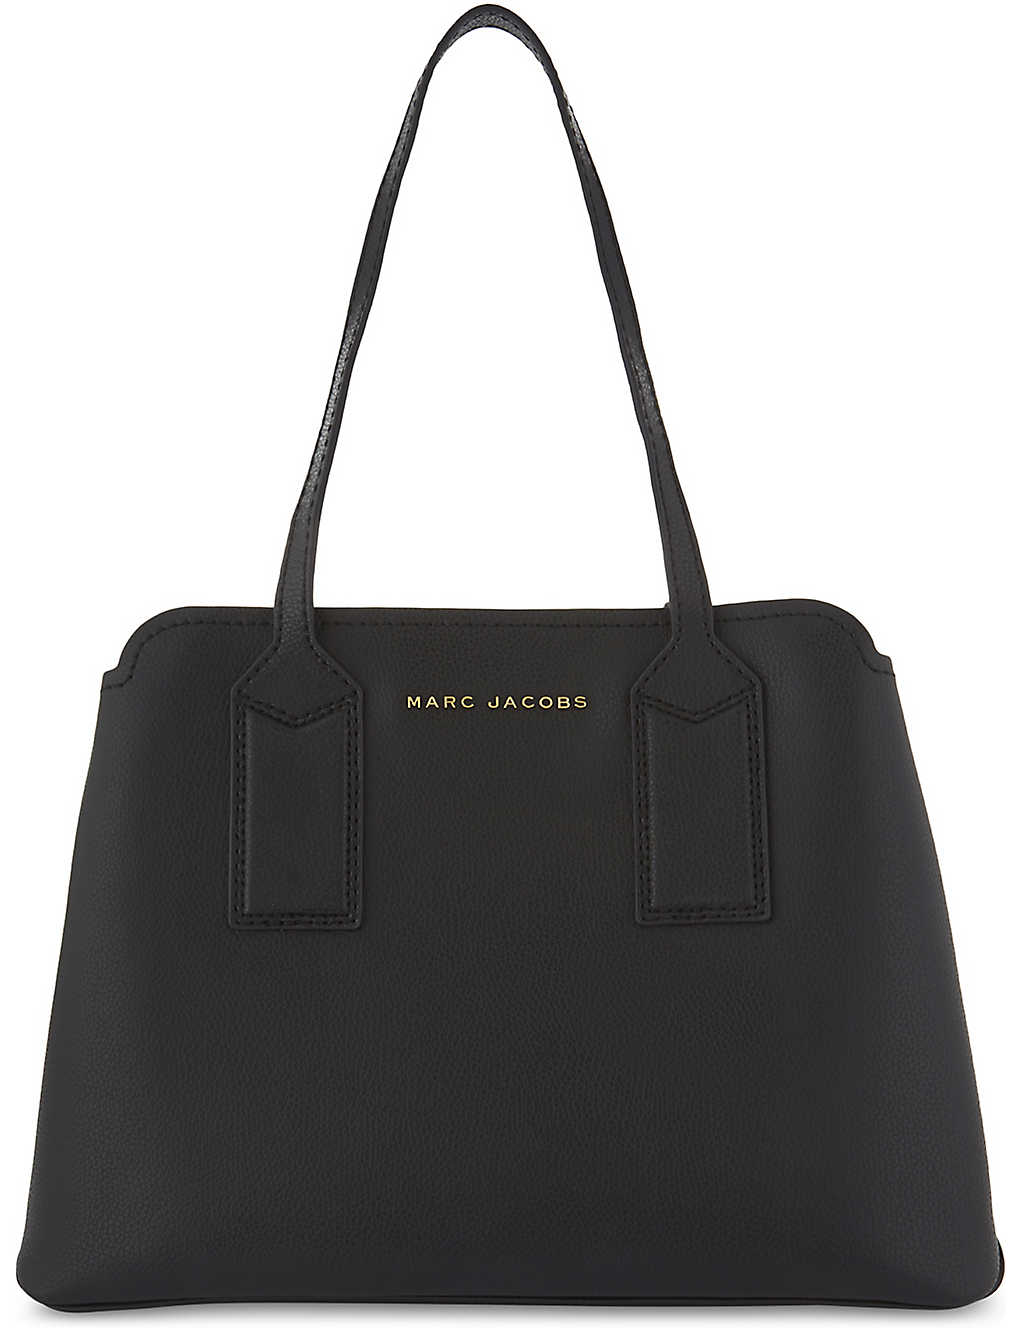 79ca4d8d20f MARC JACOBS - The Editor leather shoulder bag | Selfridges.com